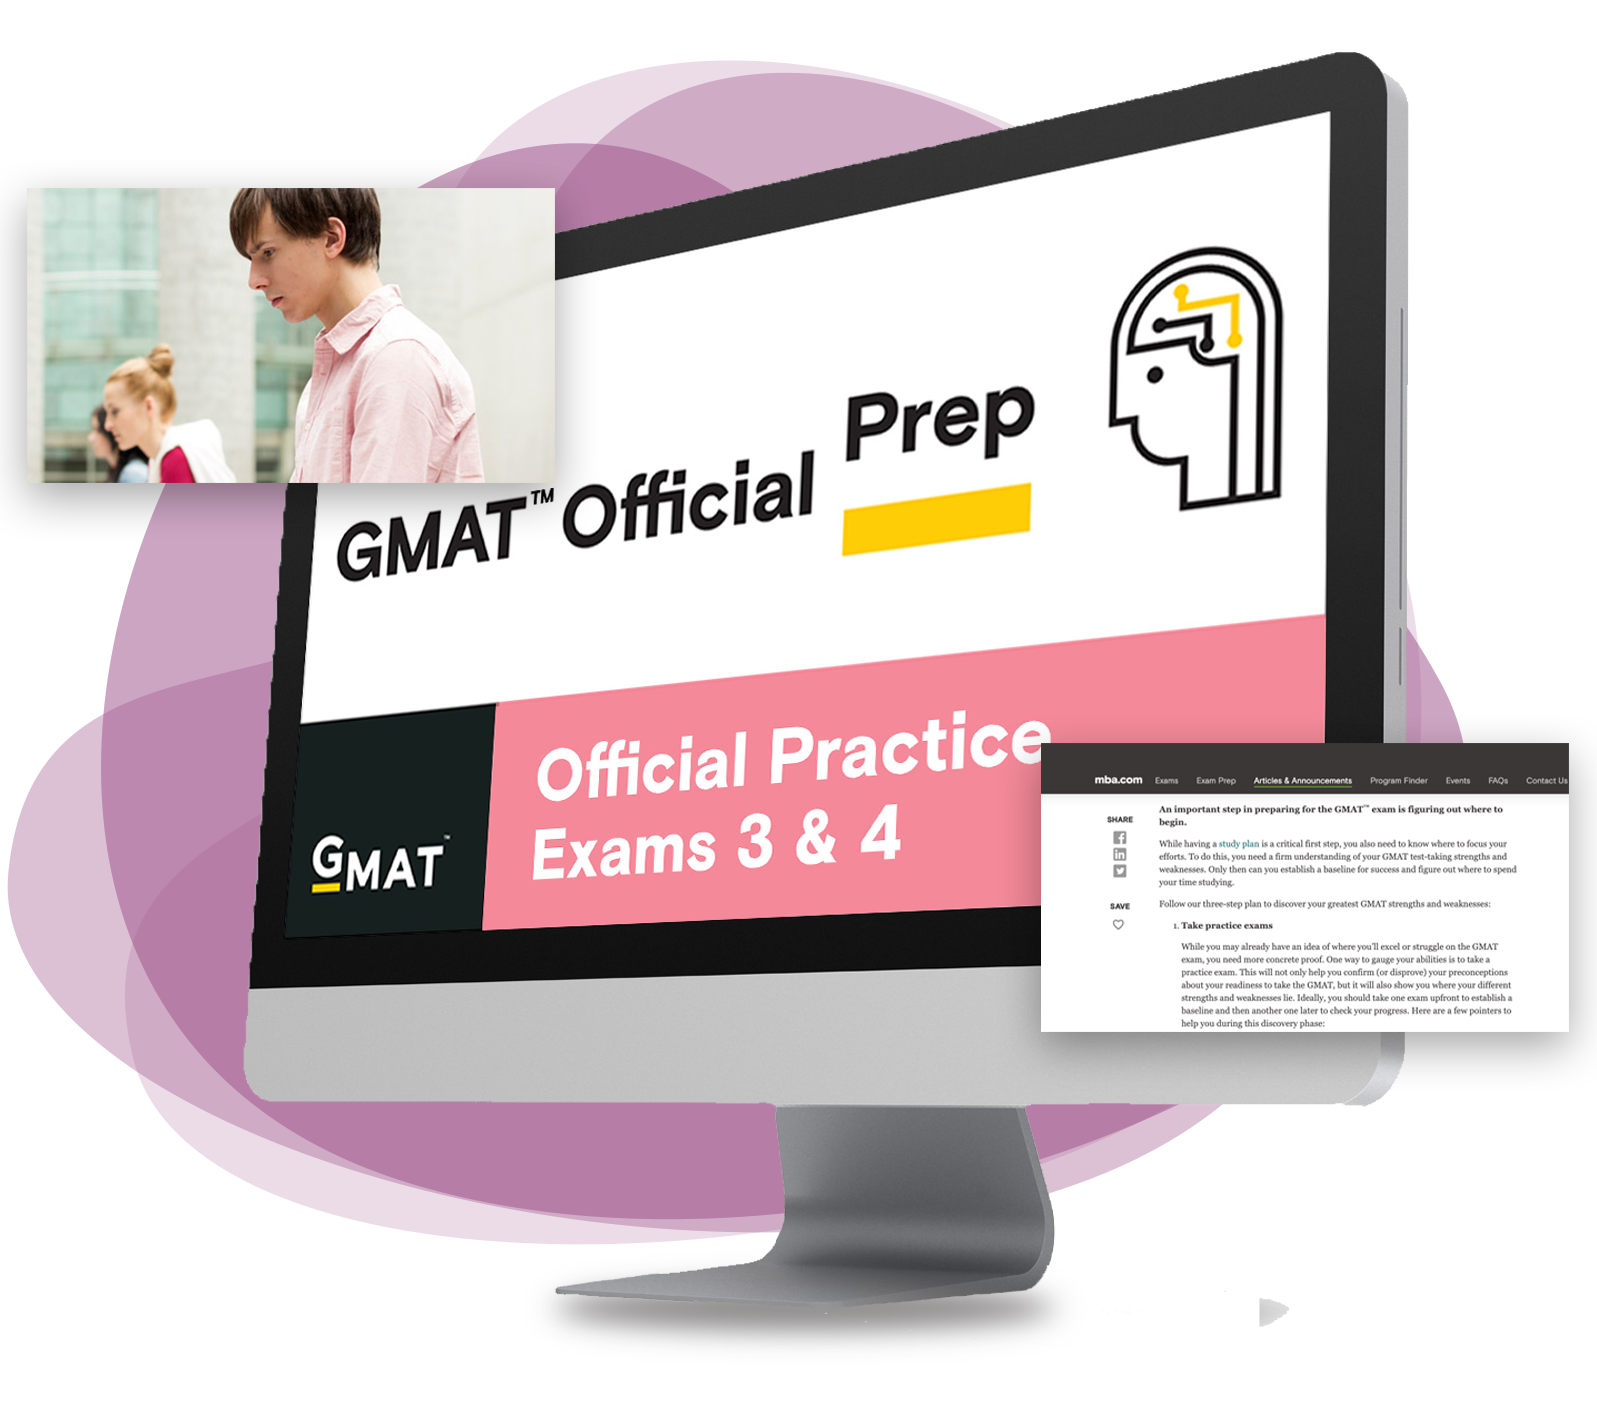 Simulate Test-Taking: GMAT Official Practice Exams